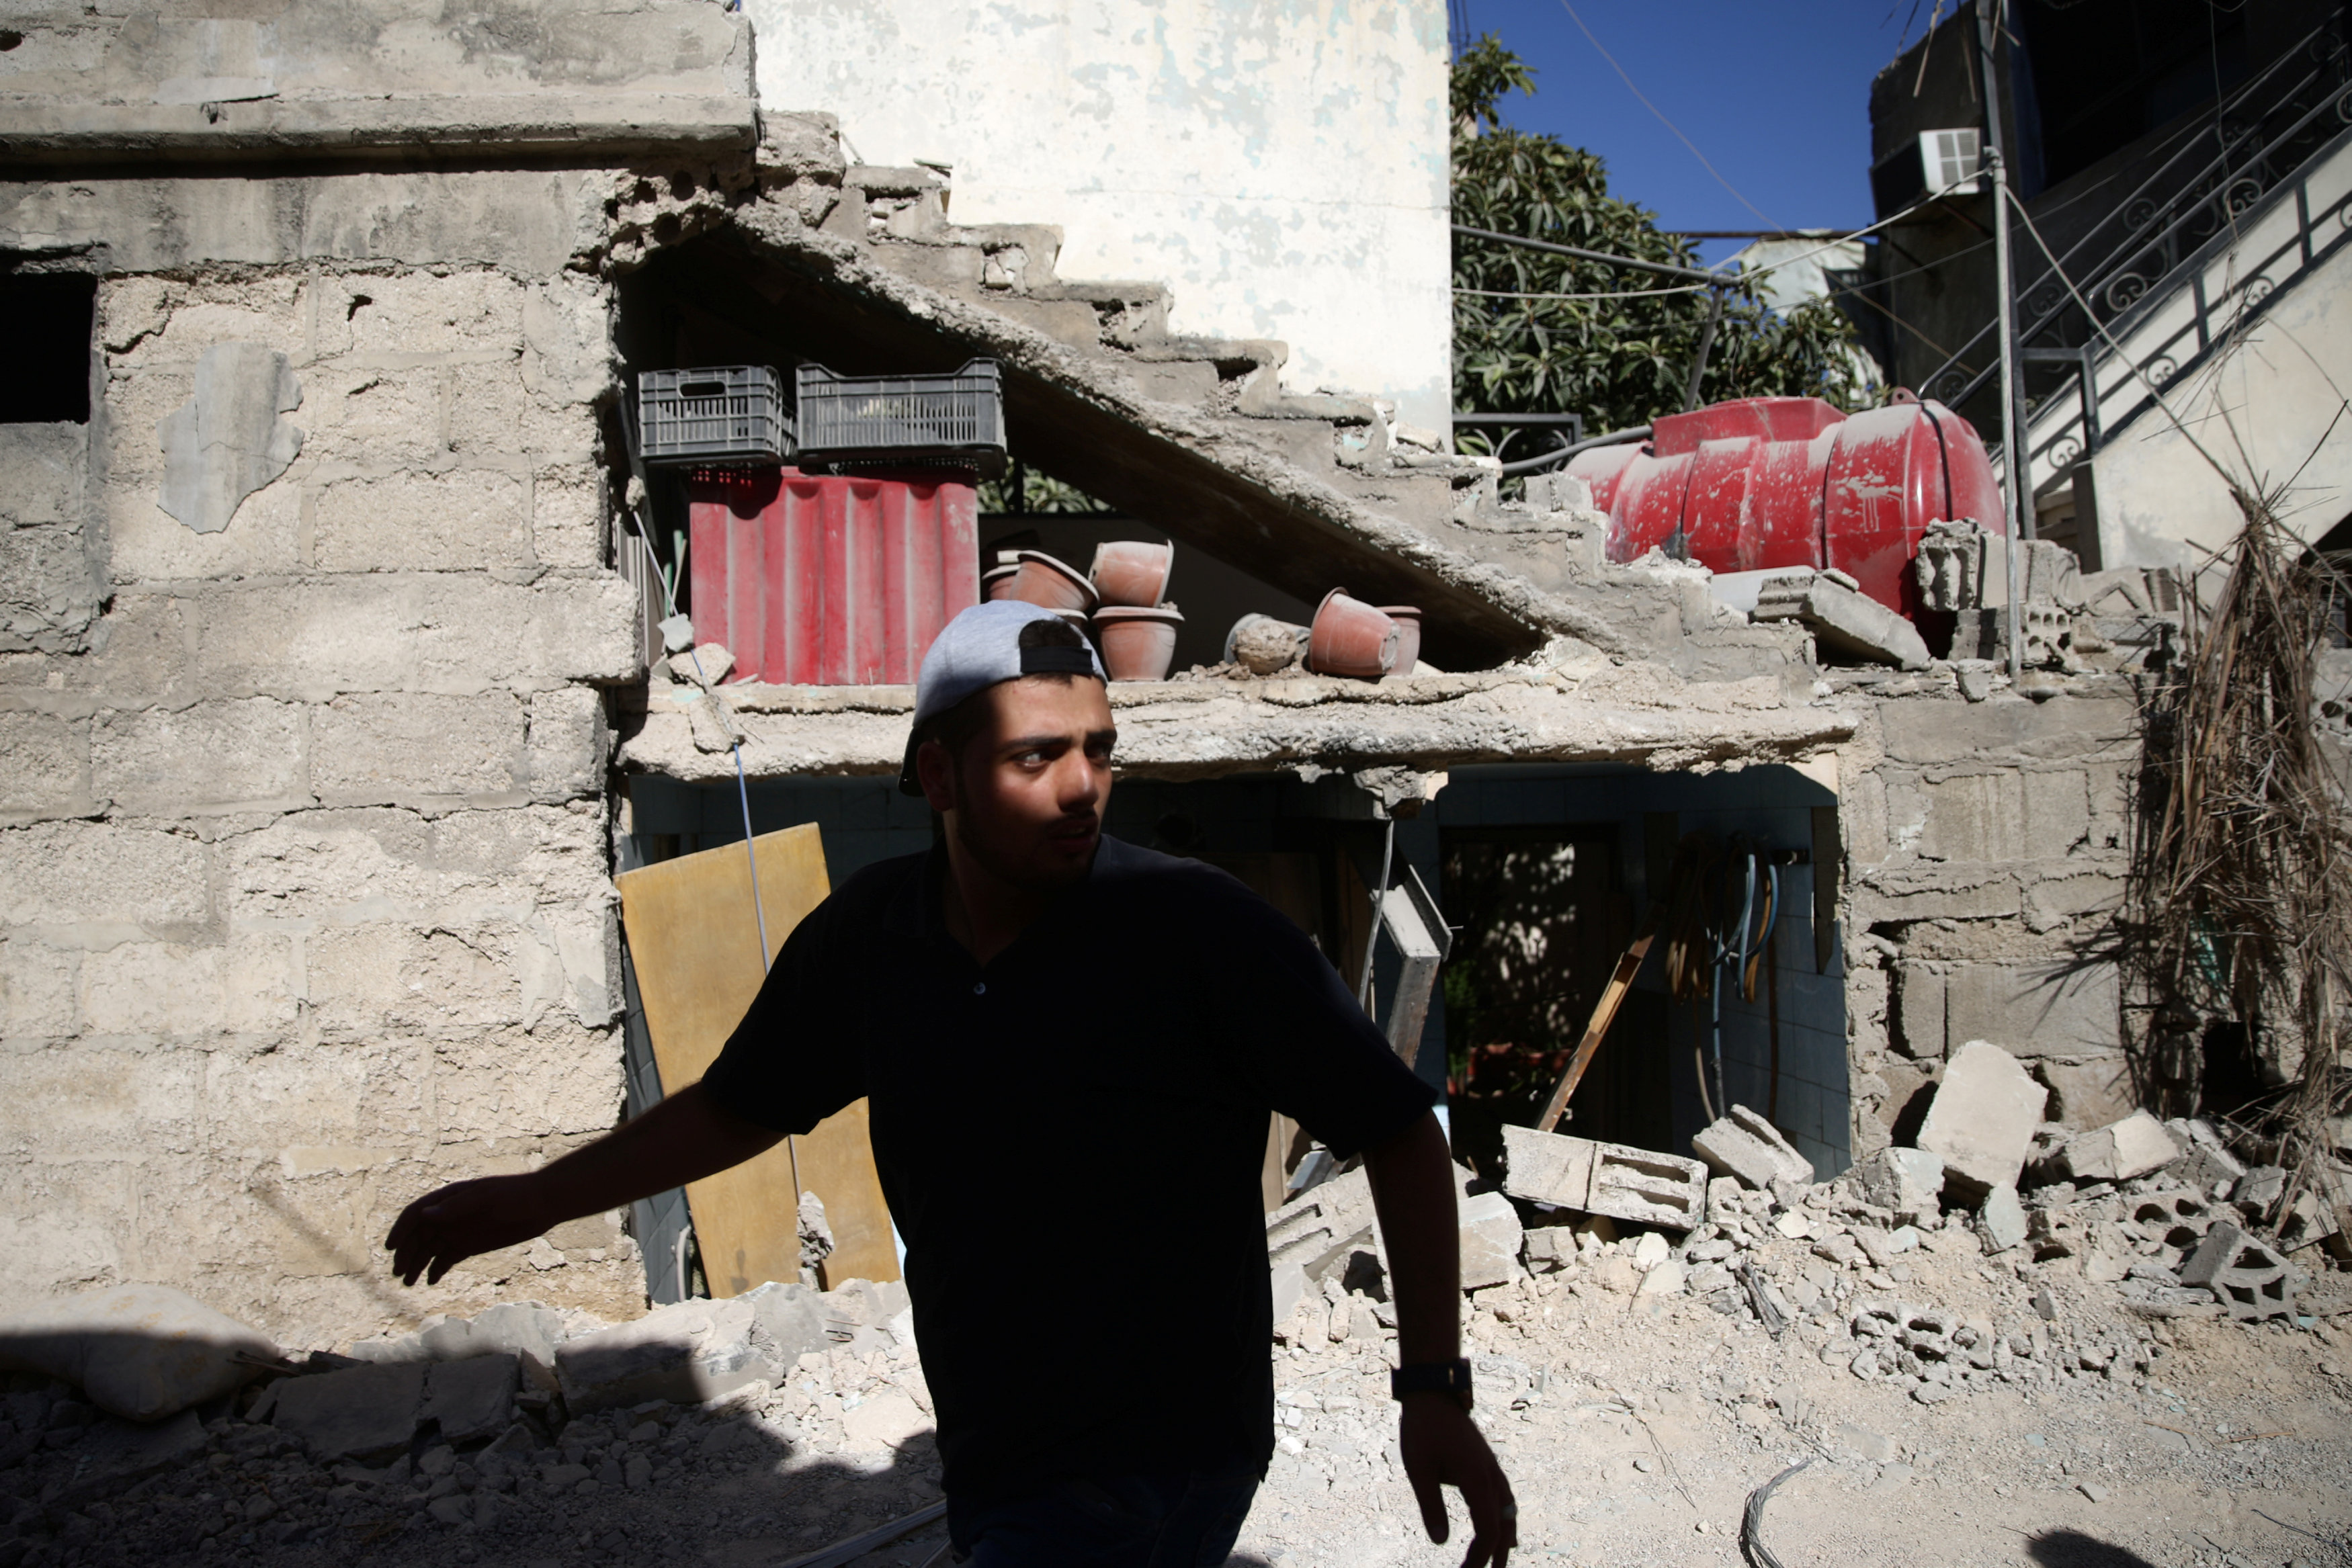 IS shuns offer to withdraw from Syrian city